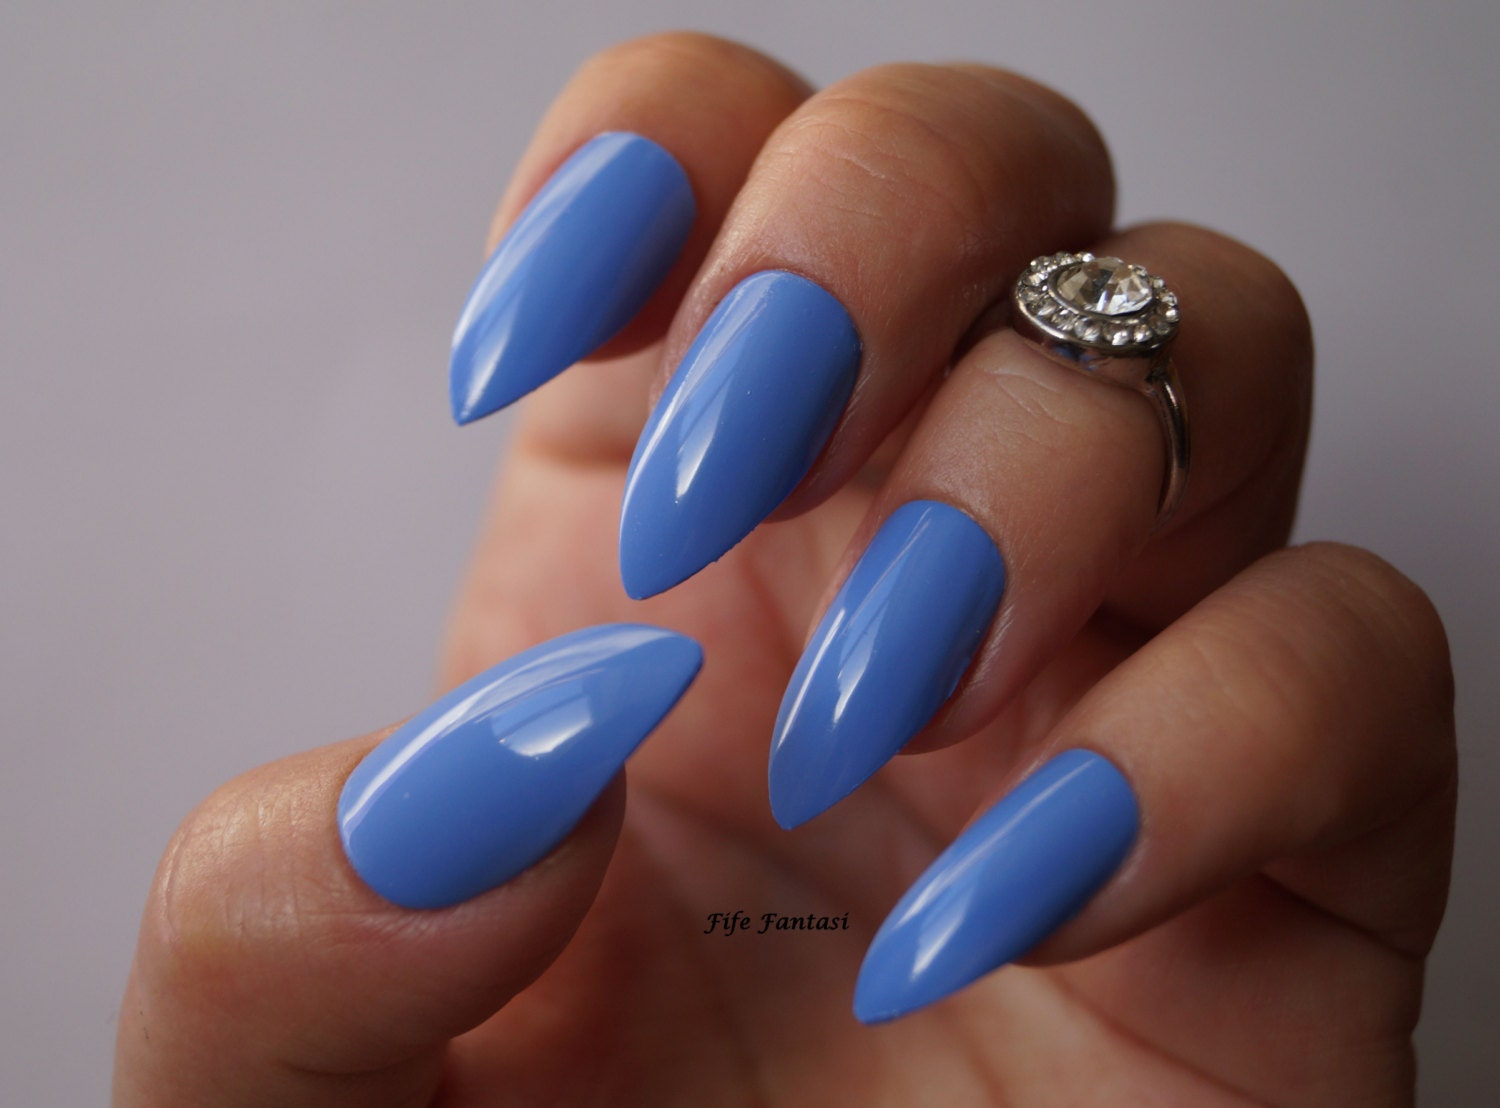 Blue stiletto nails Nail art Nails Stiletto nails Acrylic